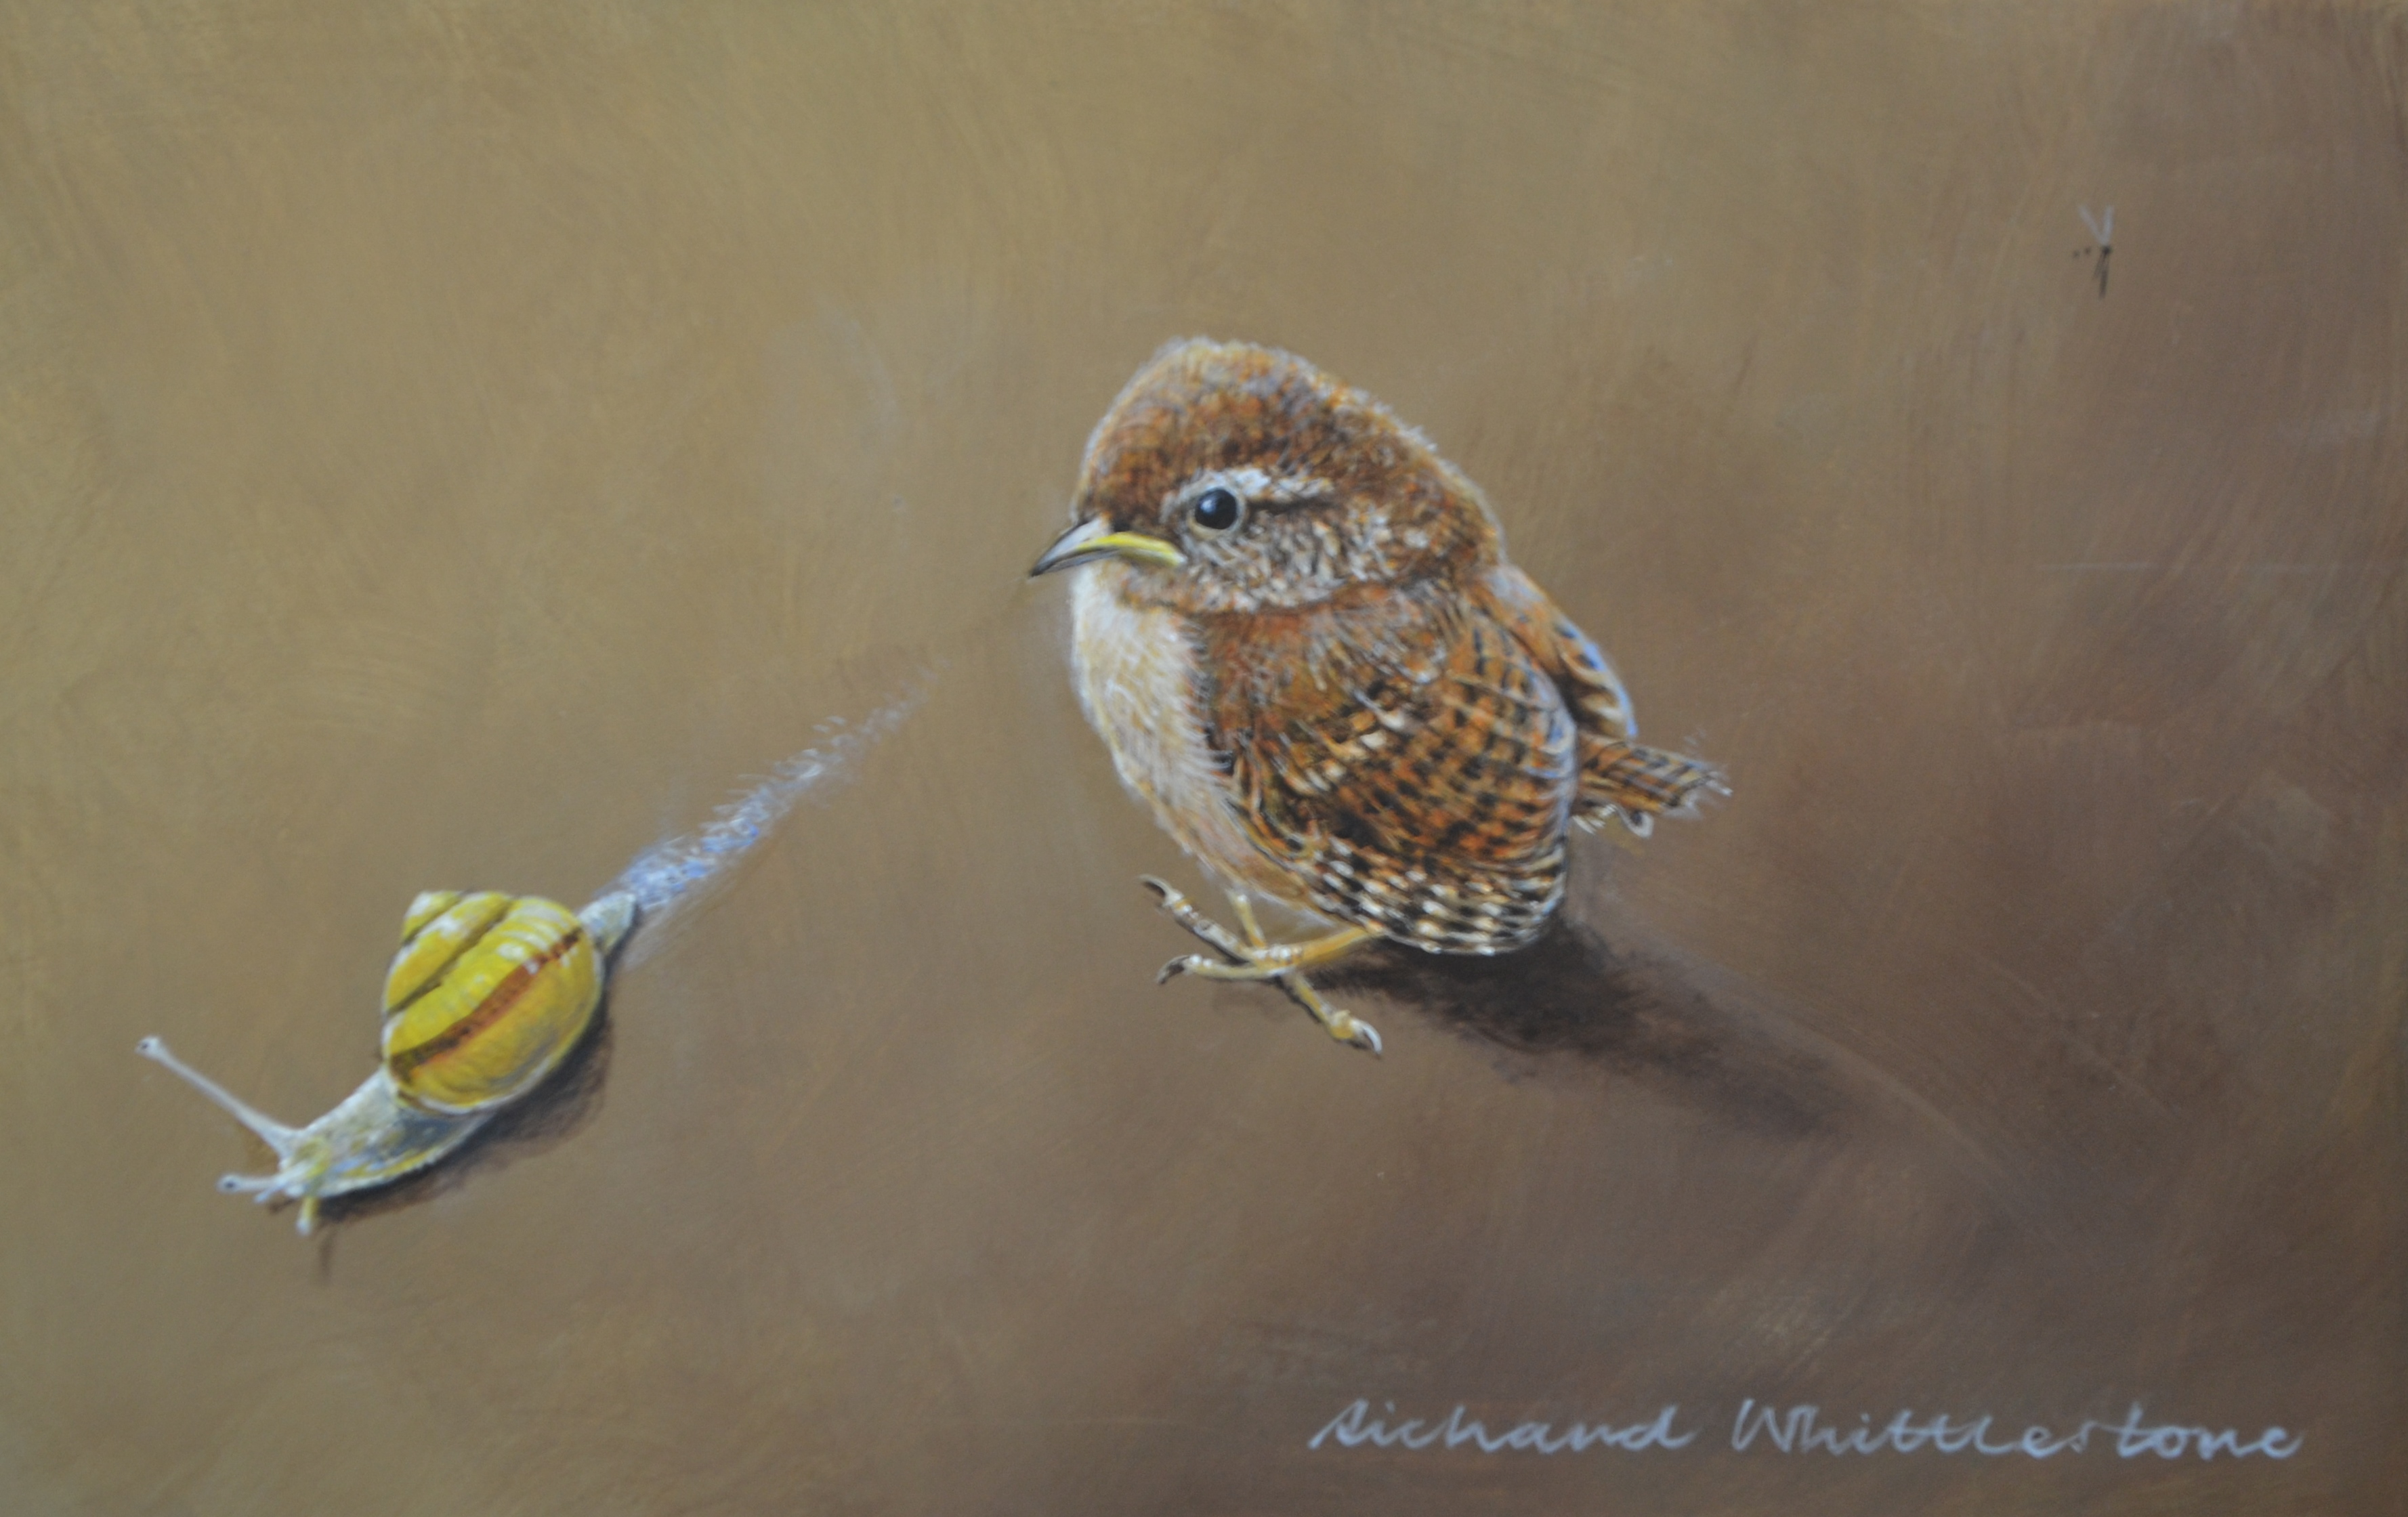 Young Wren and a Snail